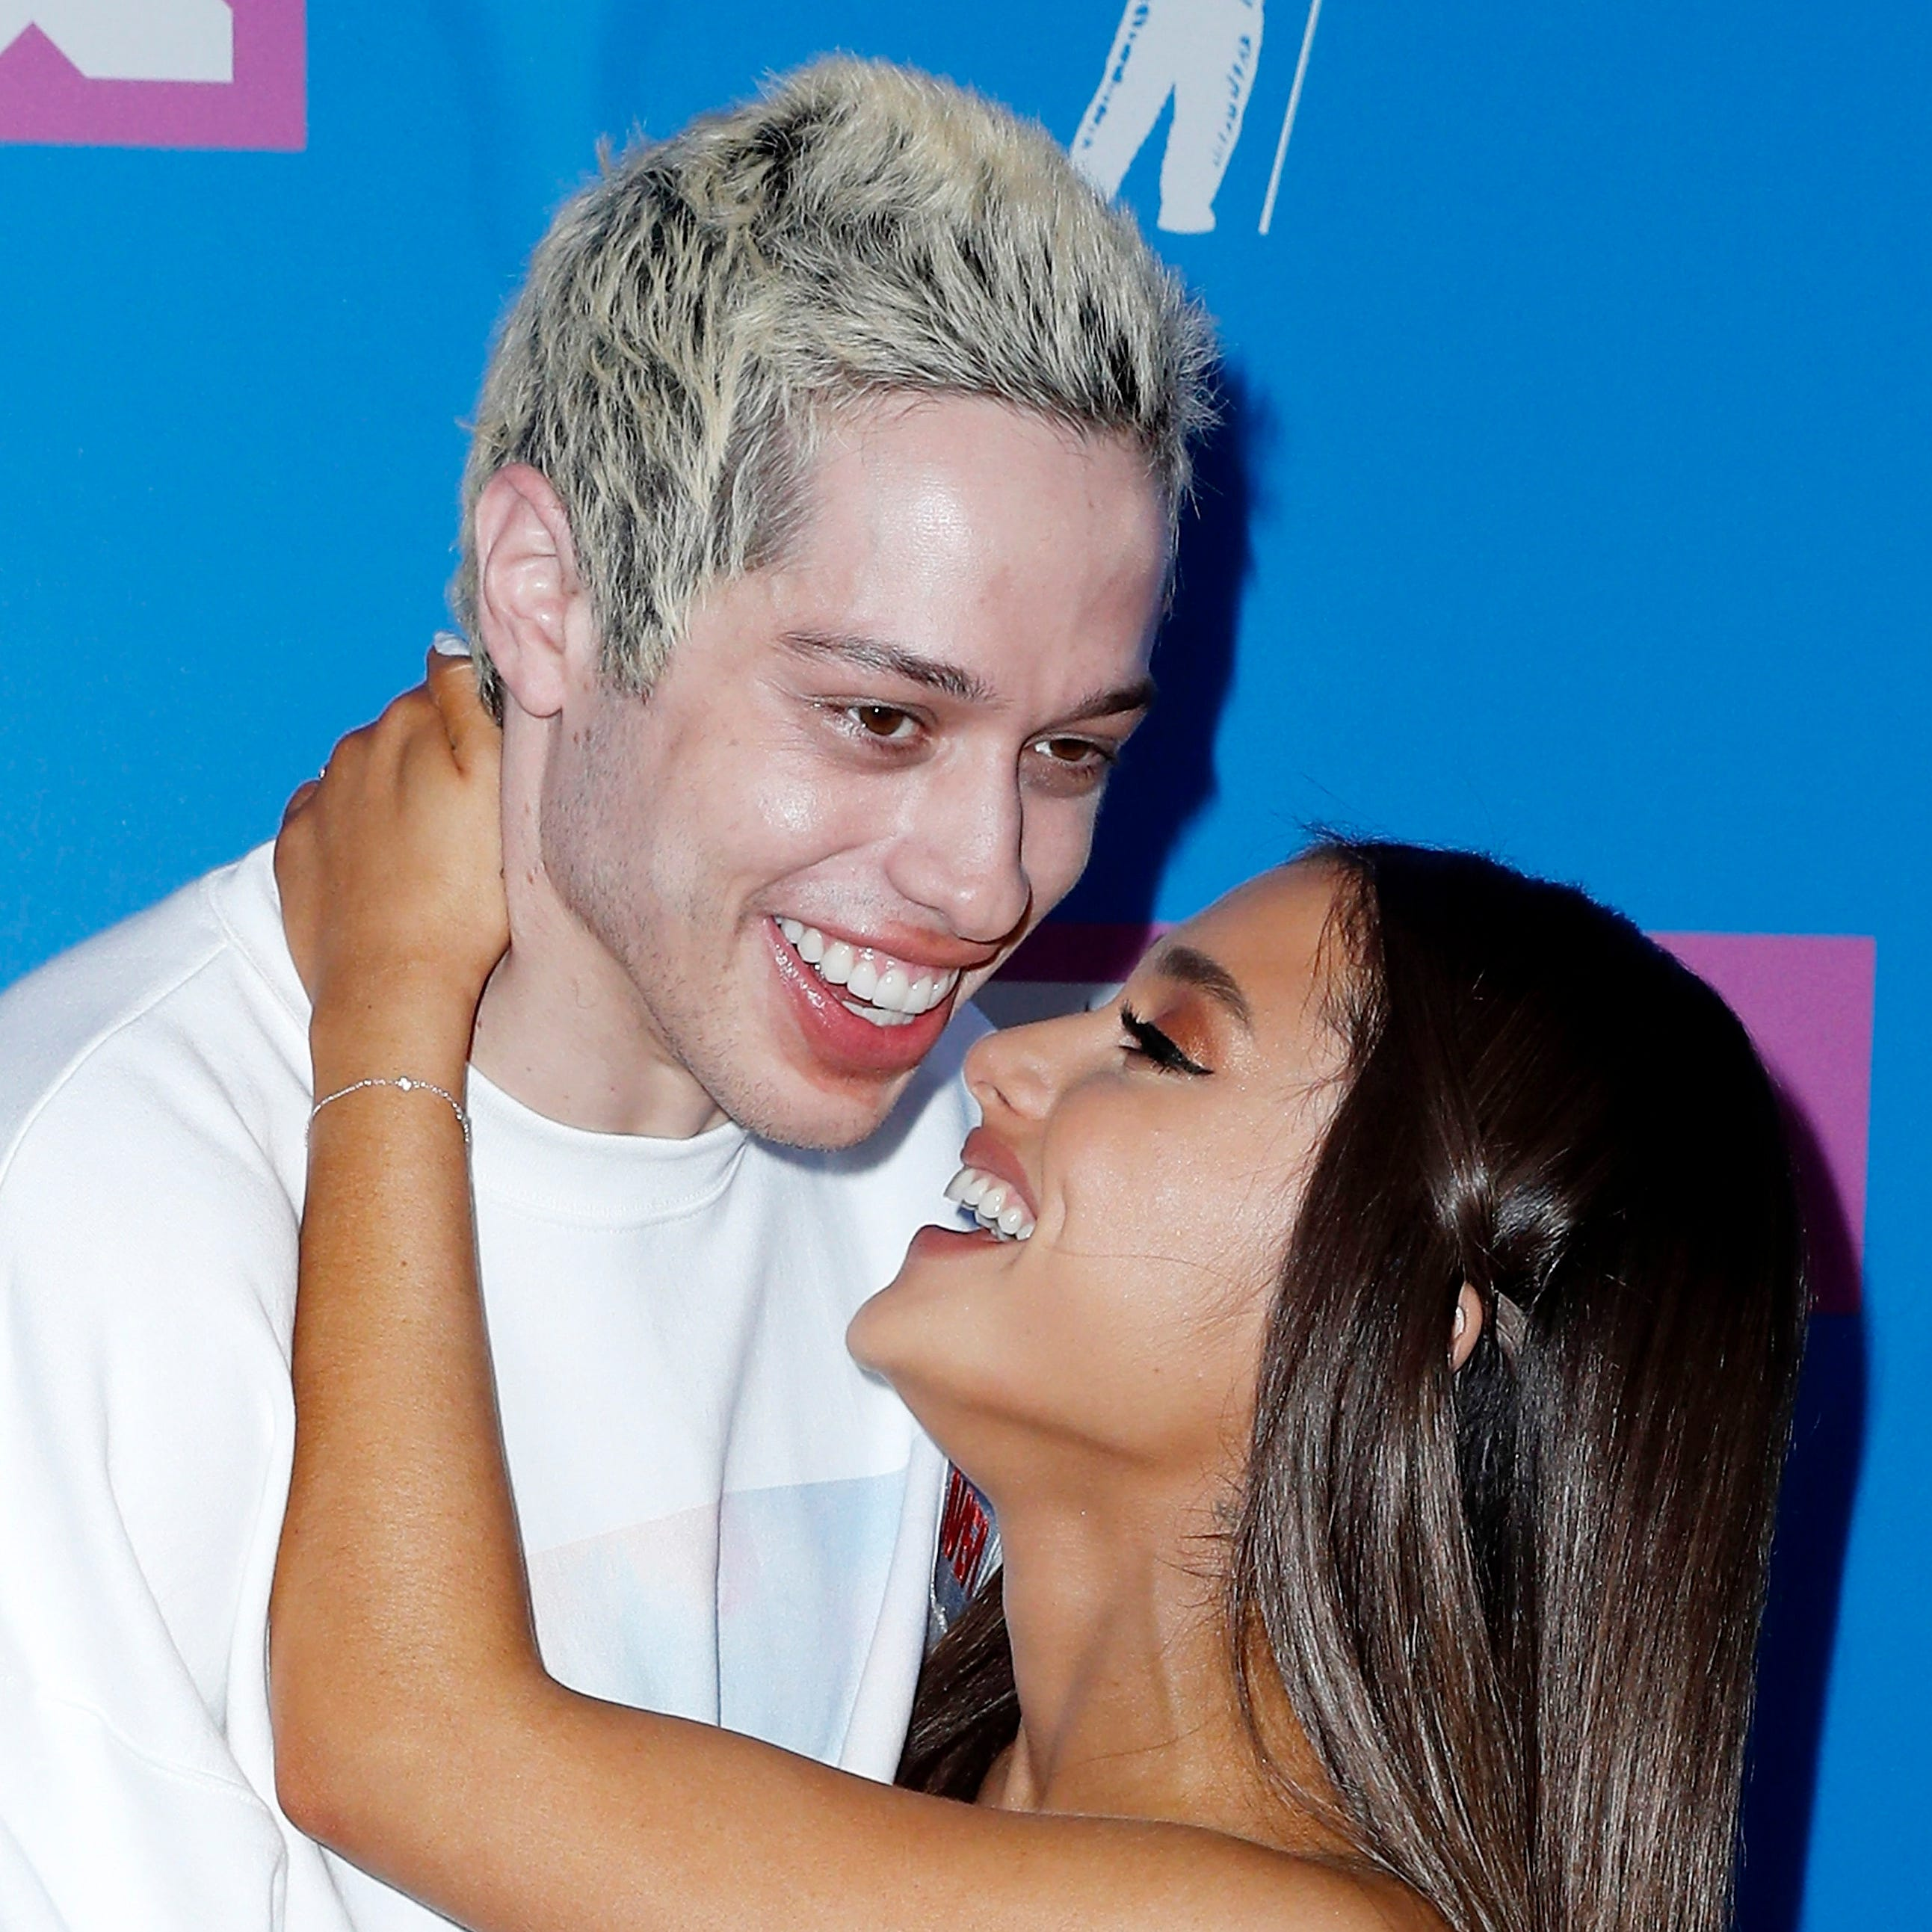 Pete Davidson with his former fiancée, Ariana Grande, at the 2018 MTV Video Music Awards in August.